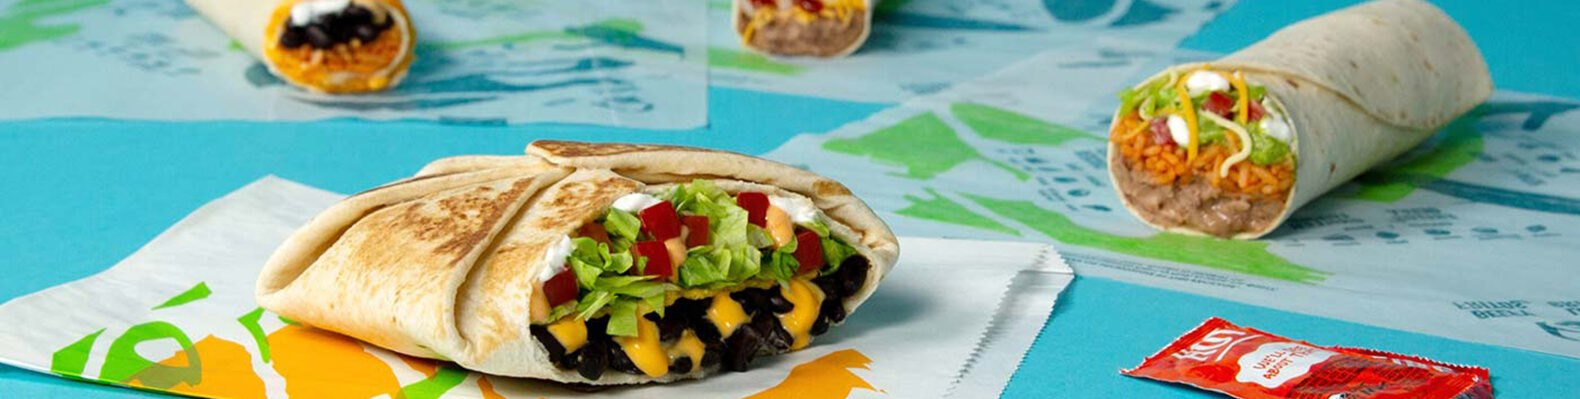 vegetarian burritos and Crunch Wrap on blue background